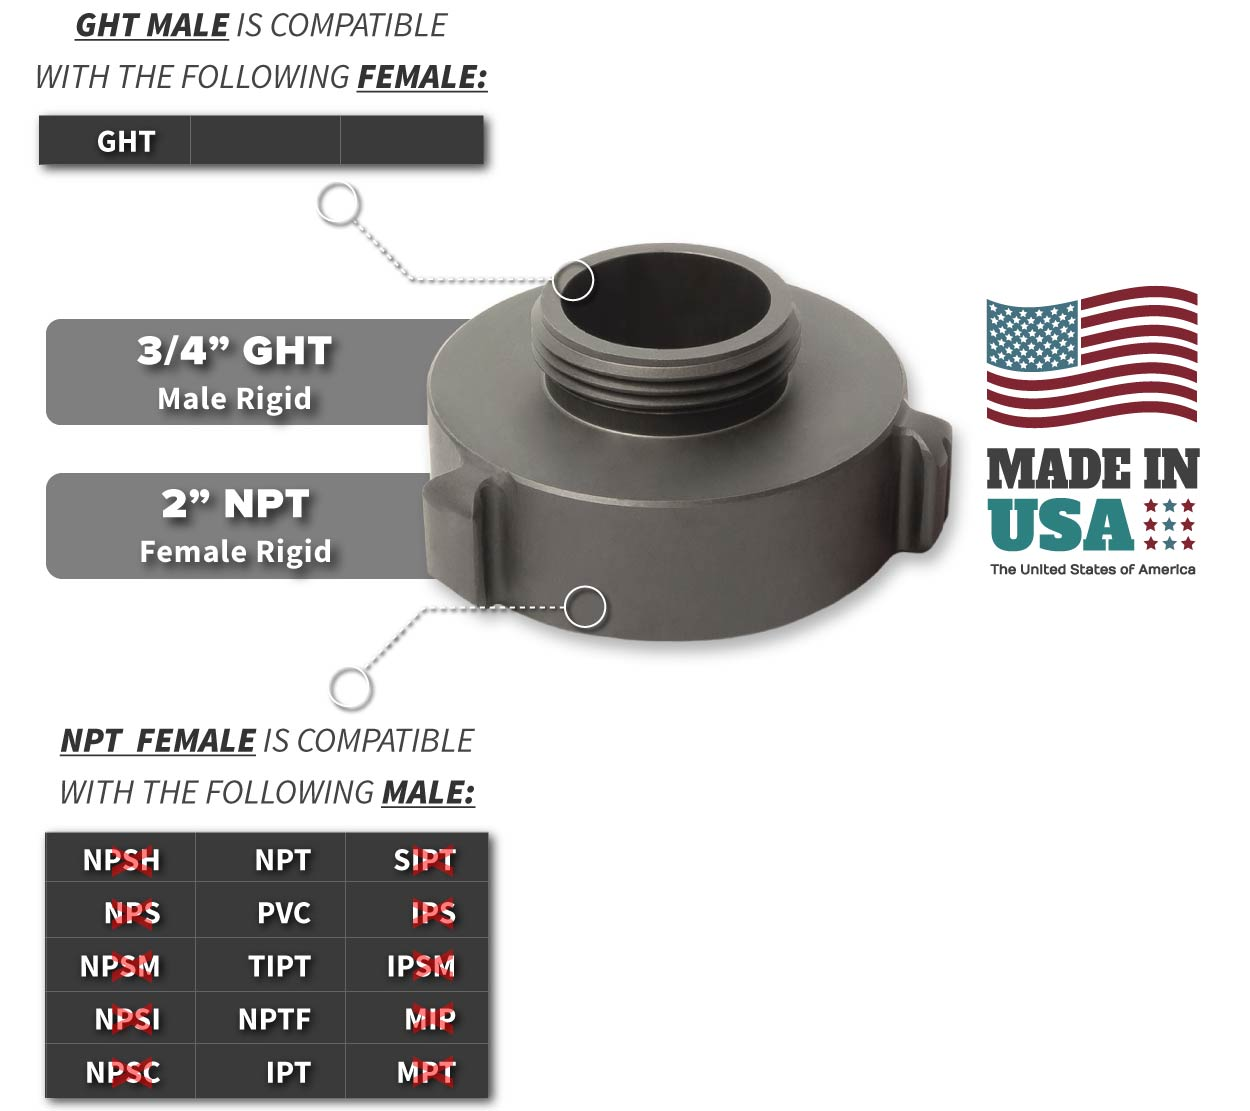 2 Inch NPT Female x 0.75 Inch GHT Male Compatibility Thread Chart